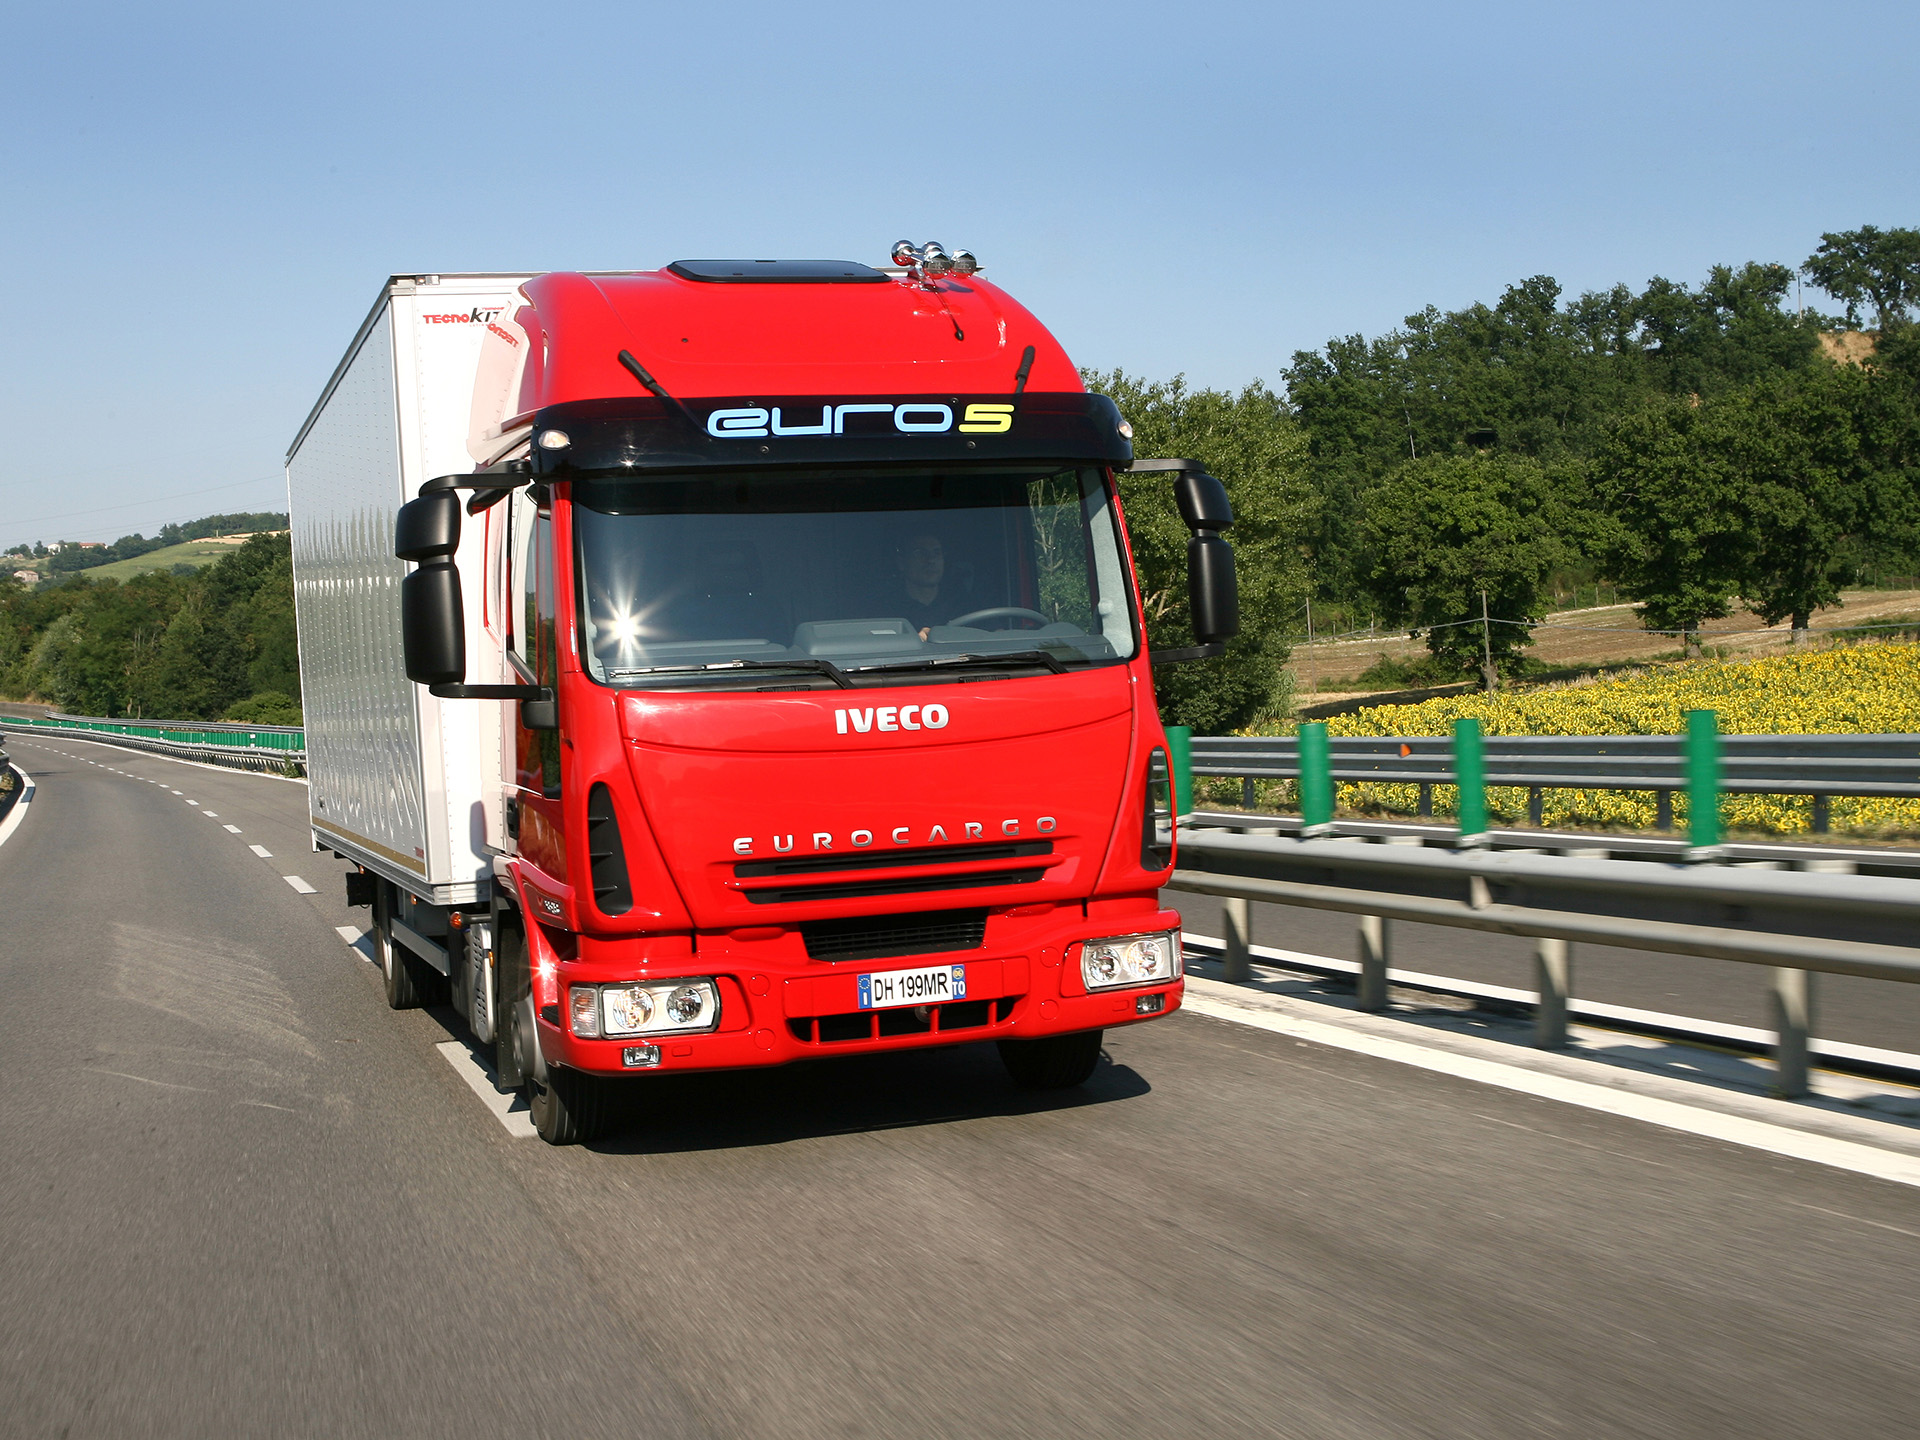 You can vote for this IVECO Eurocargo photo